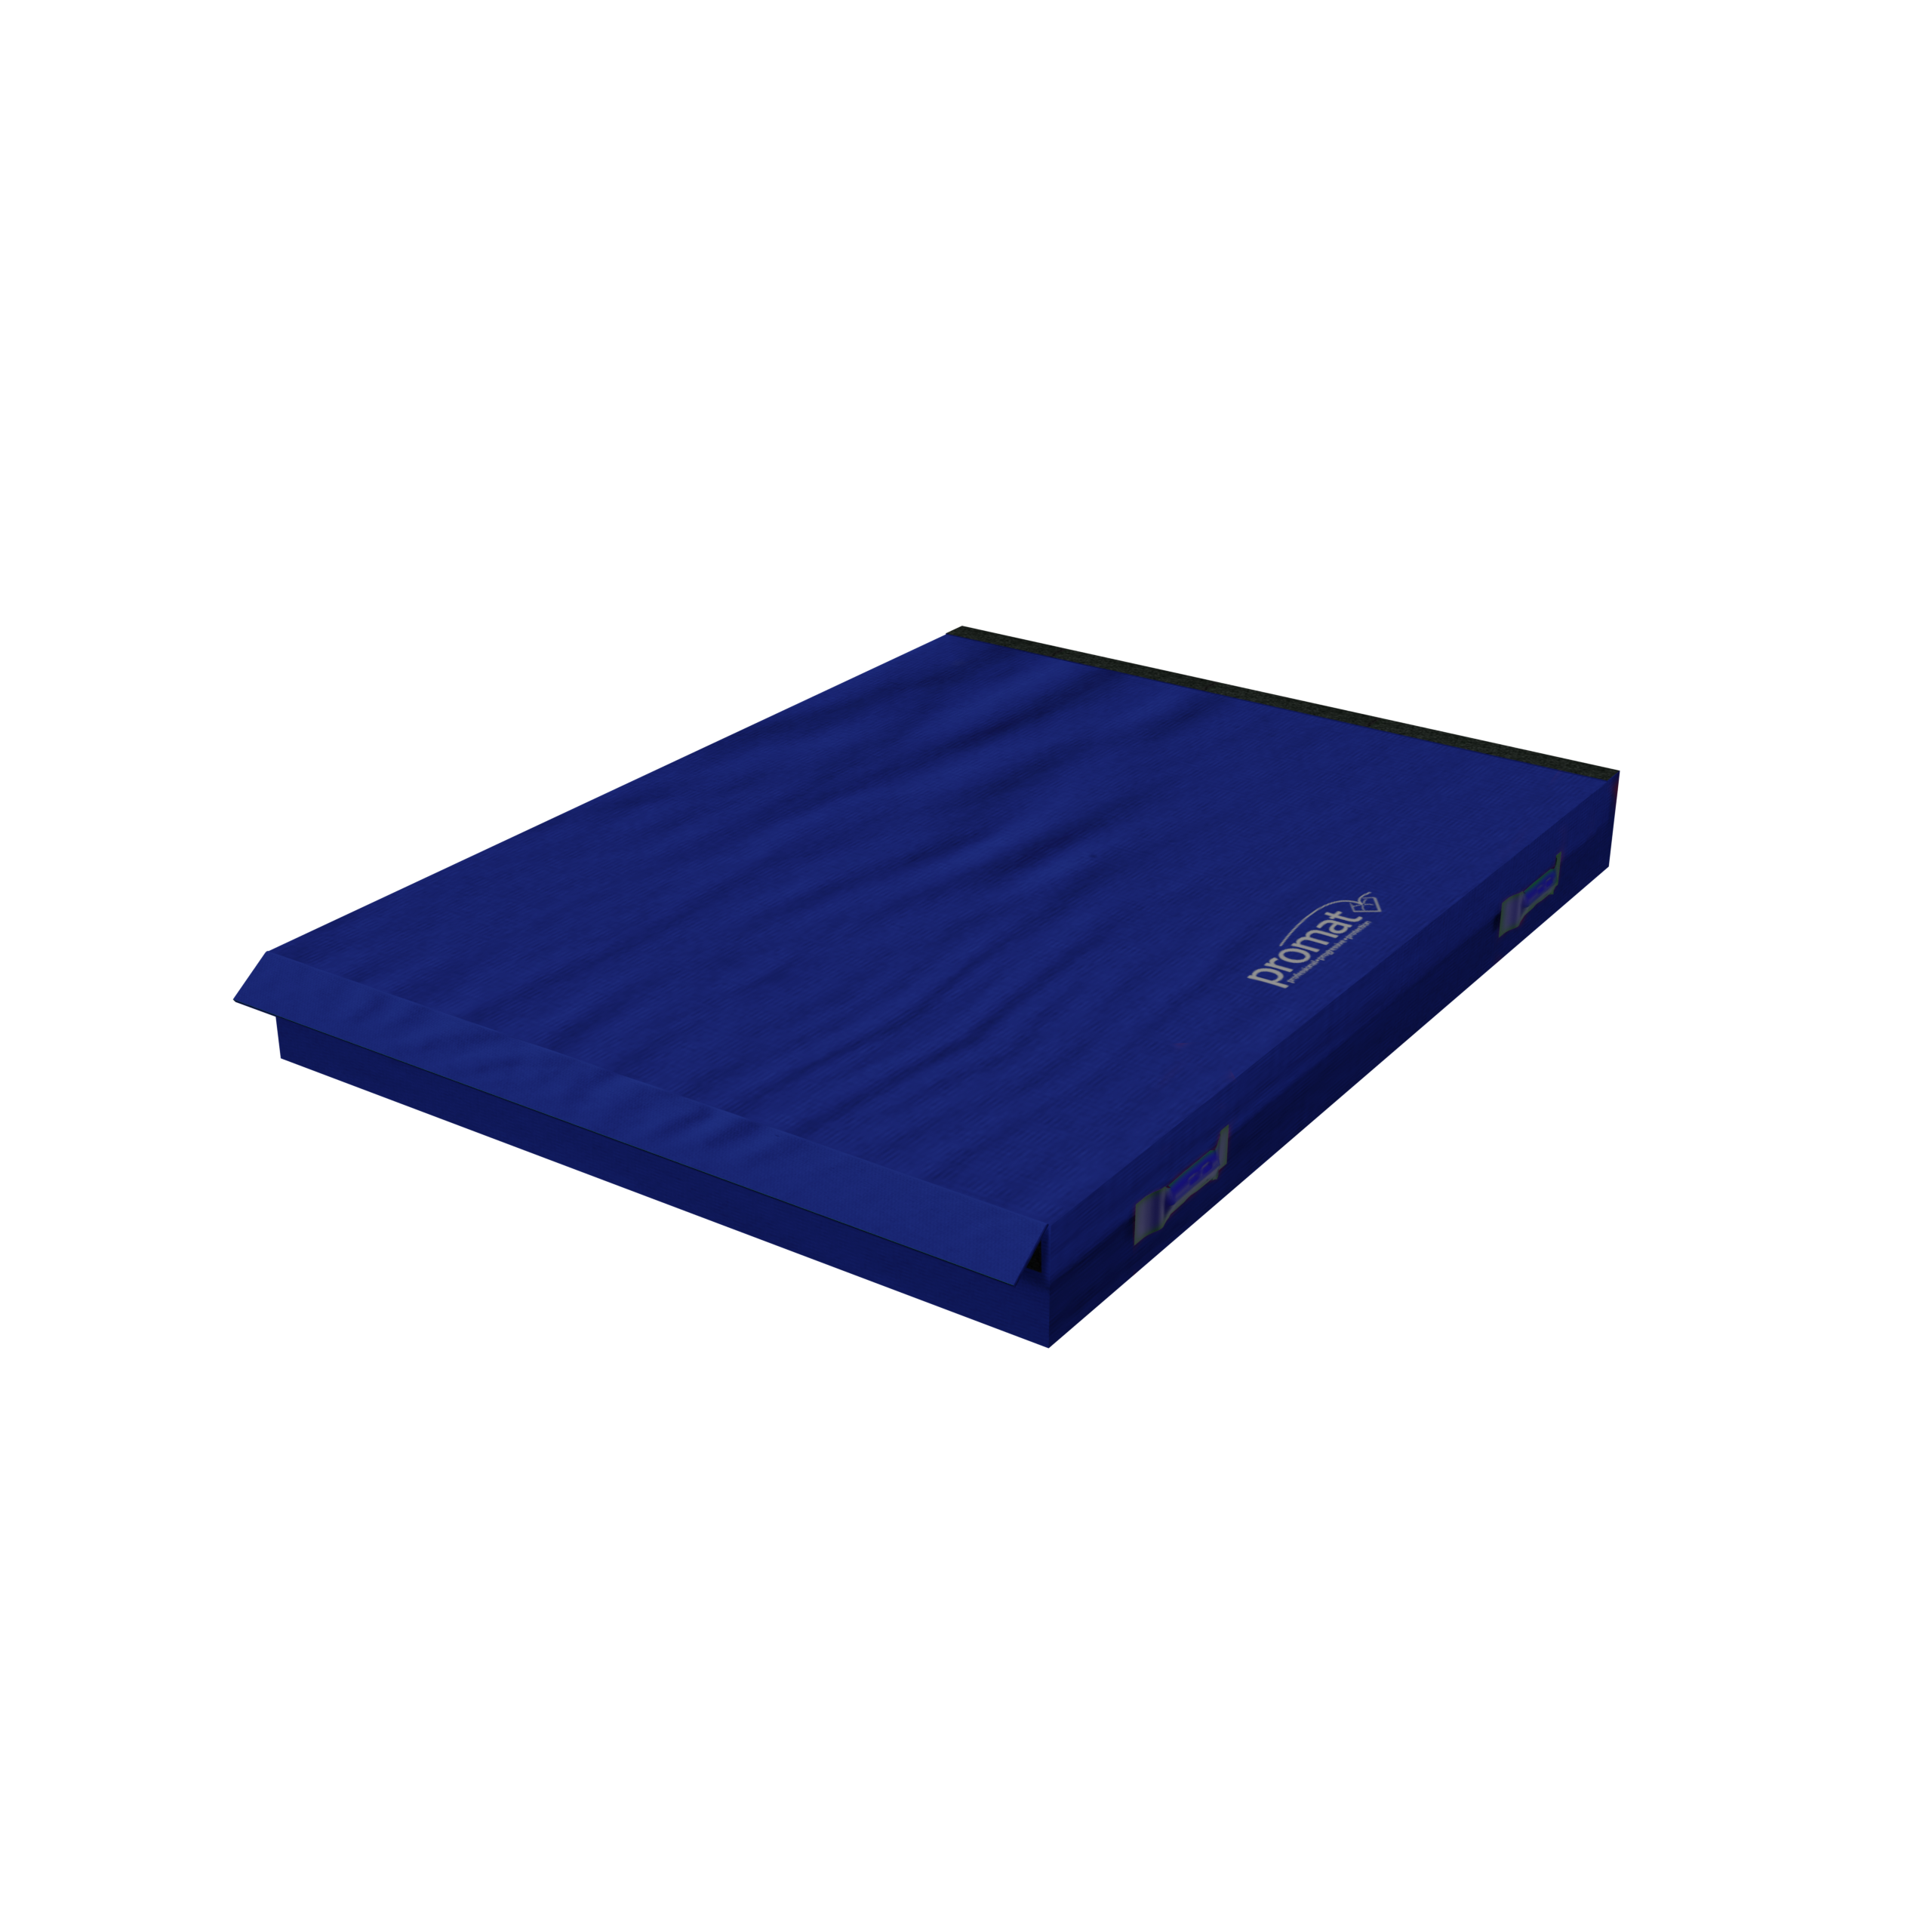 Gym Mats At Sports Direct: Promat Connecting Safety Mat